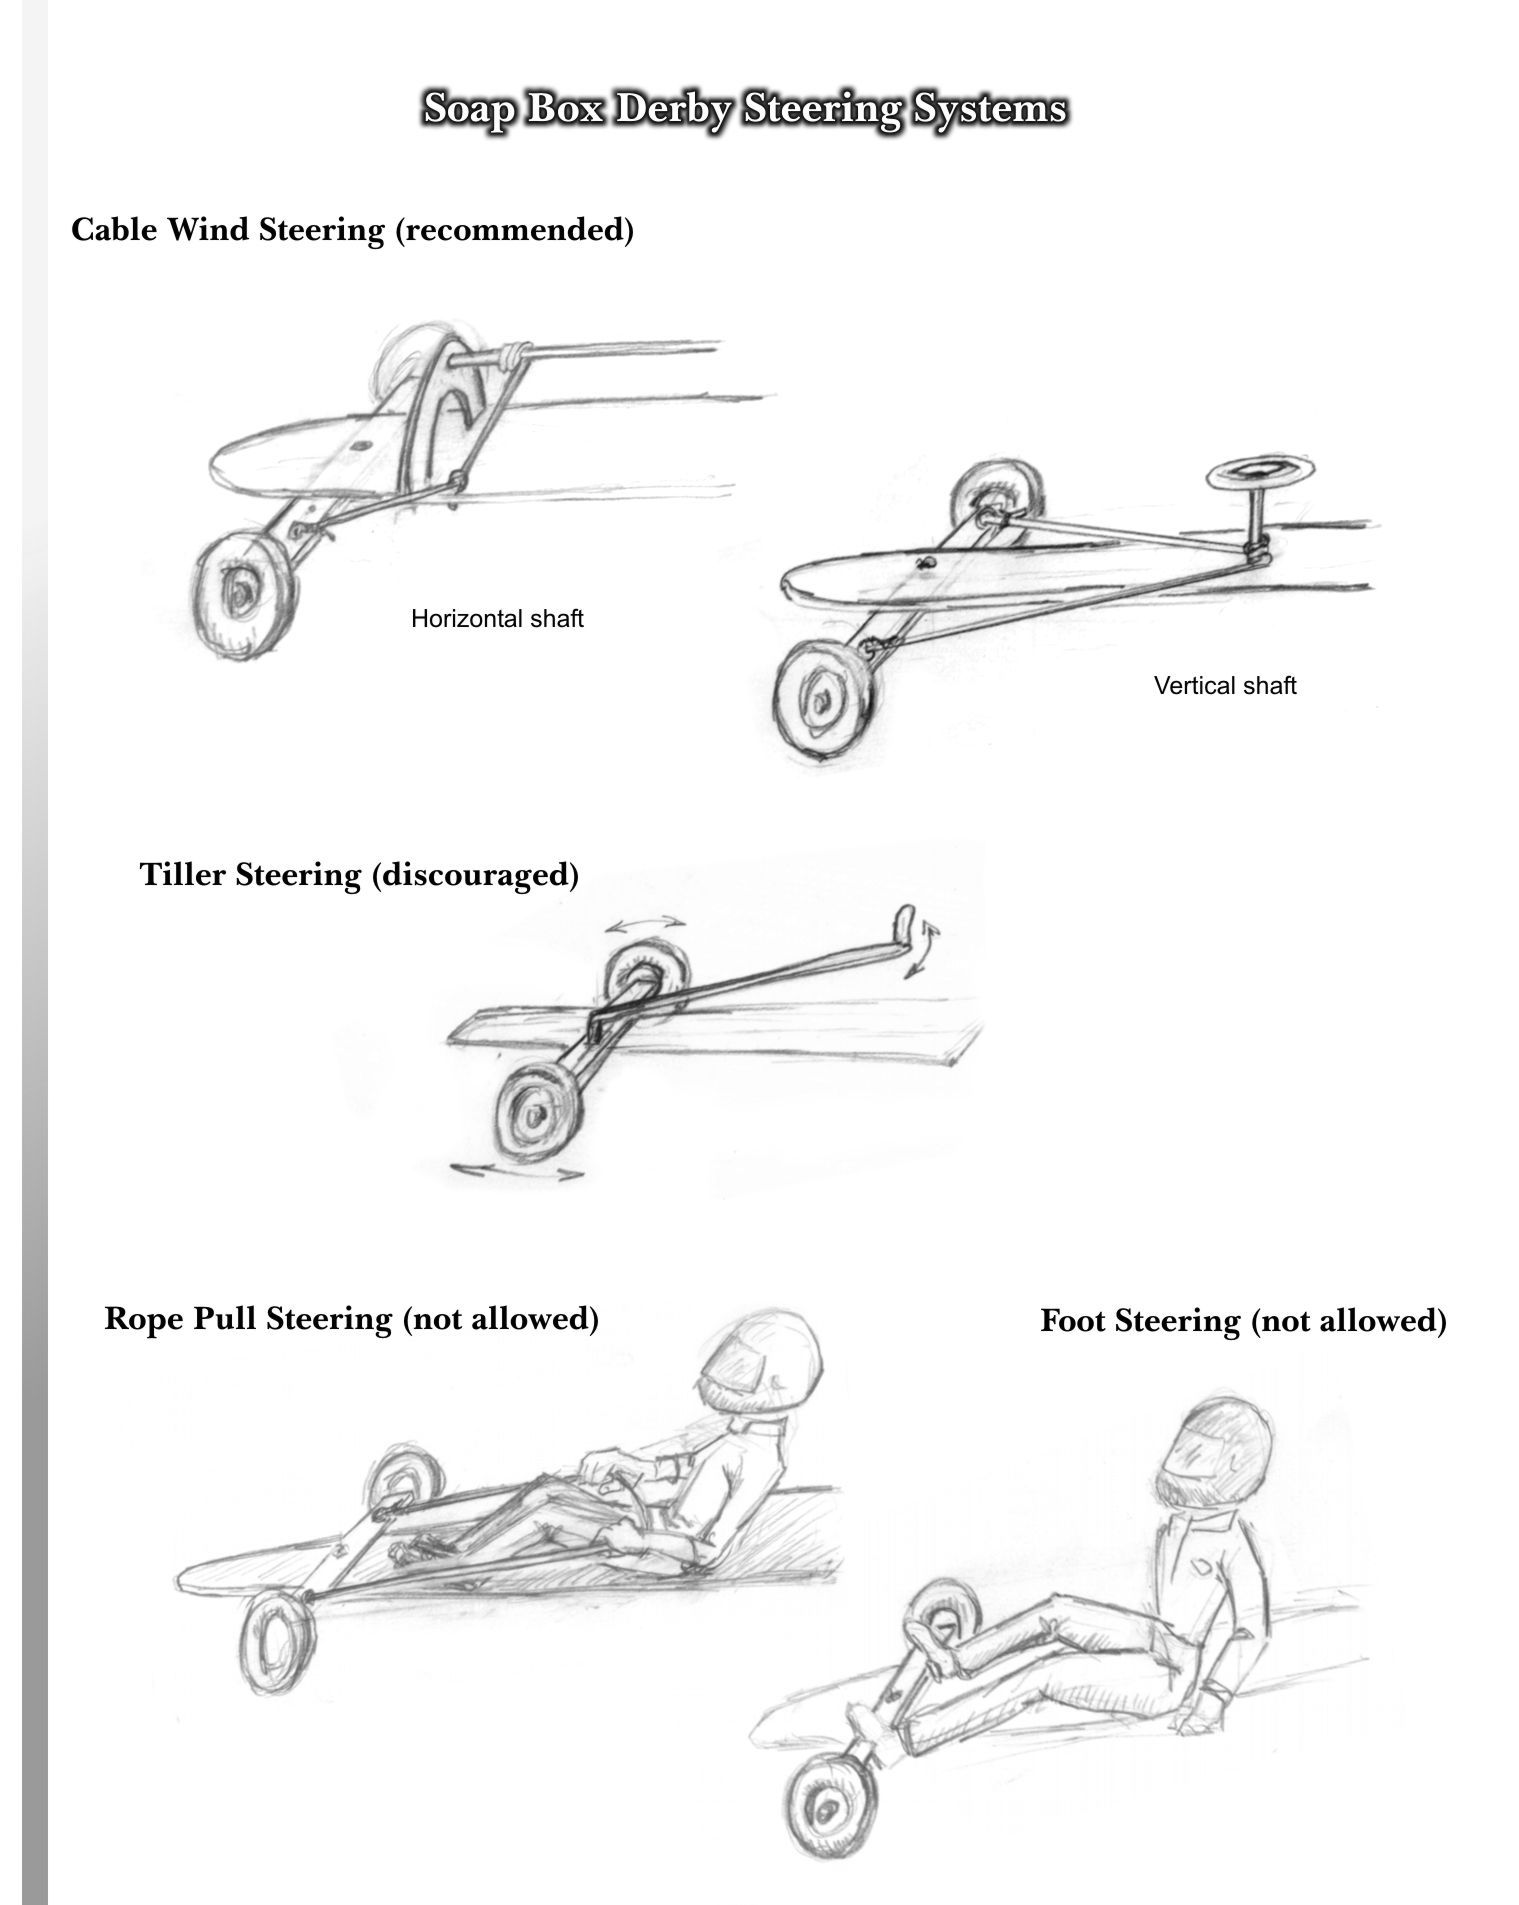 hight resolution of types of steering for soap box derby cars soapbox derby ideas wiring diagram 1955 aston martin db3s ft boxcar free download wiring